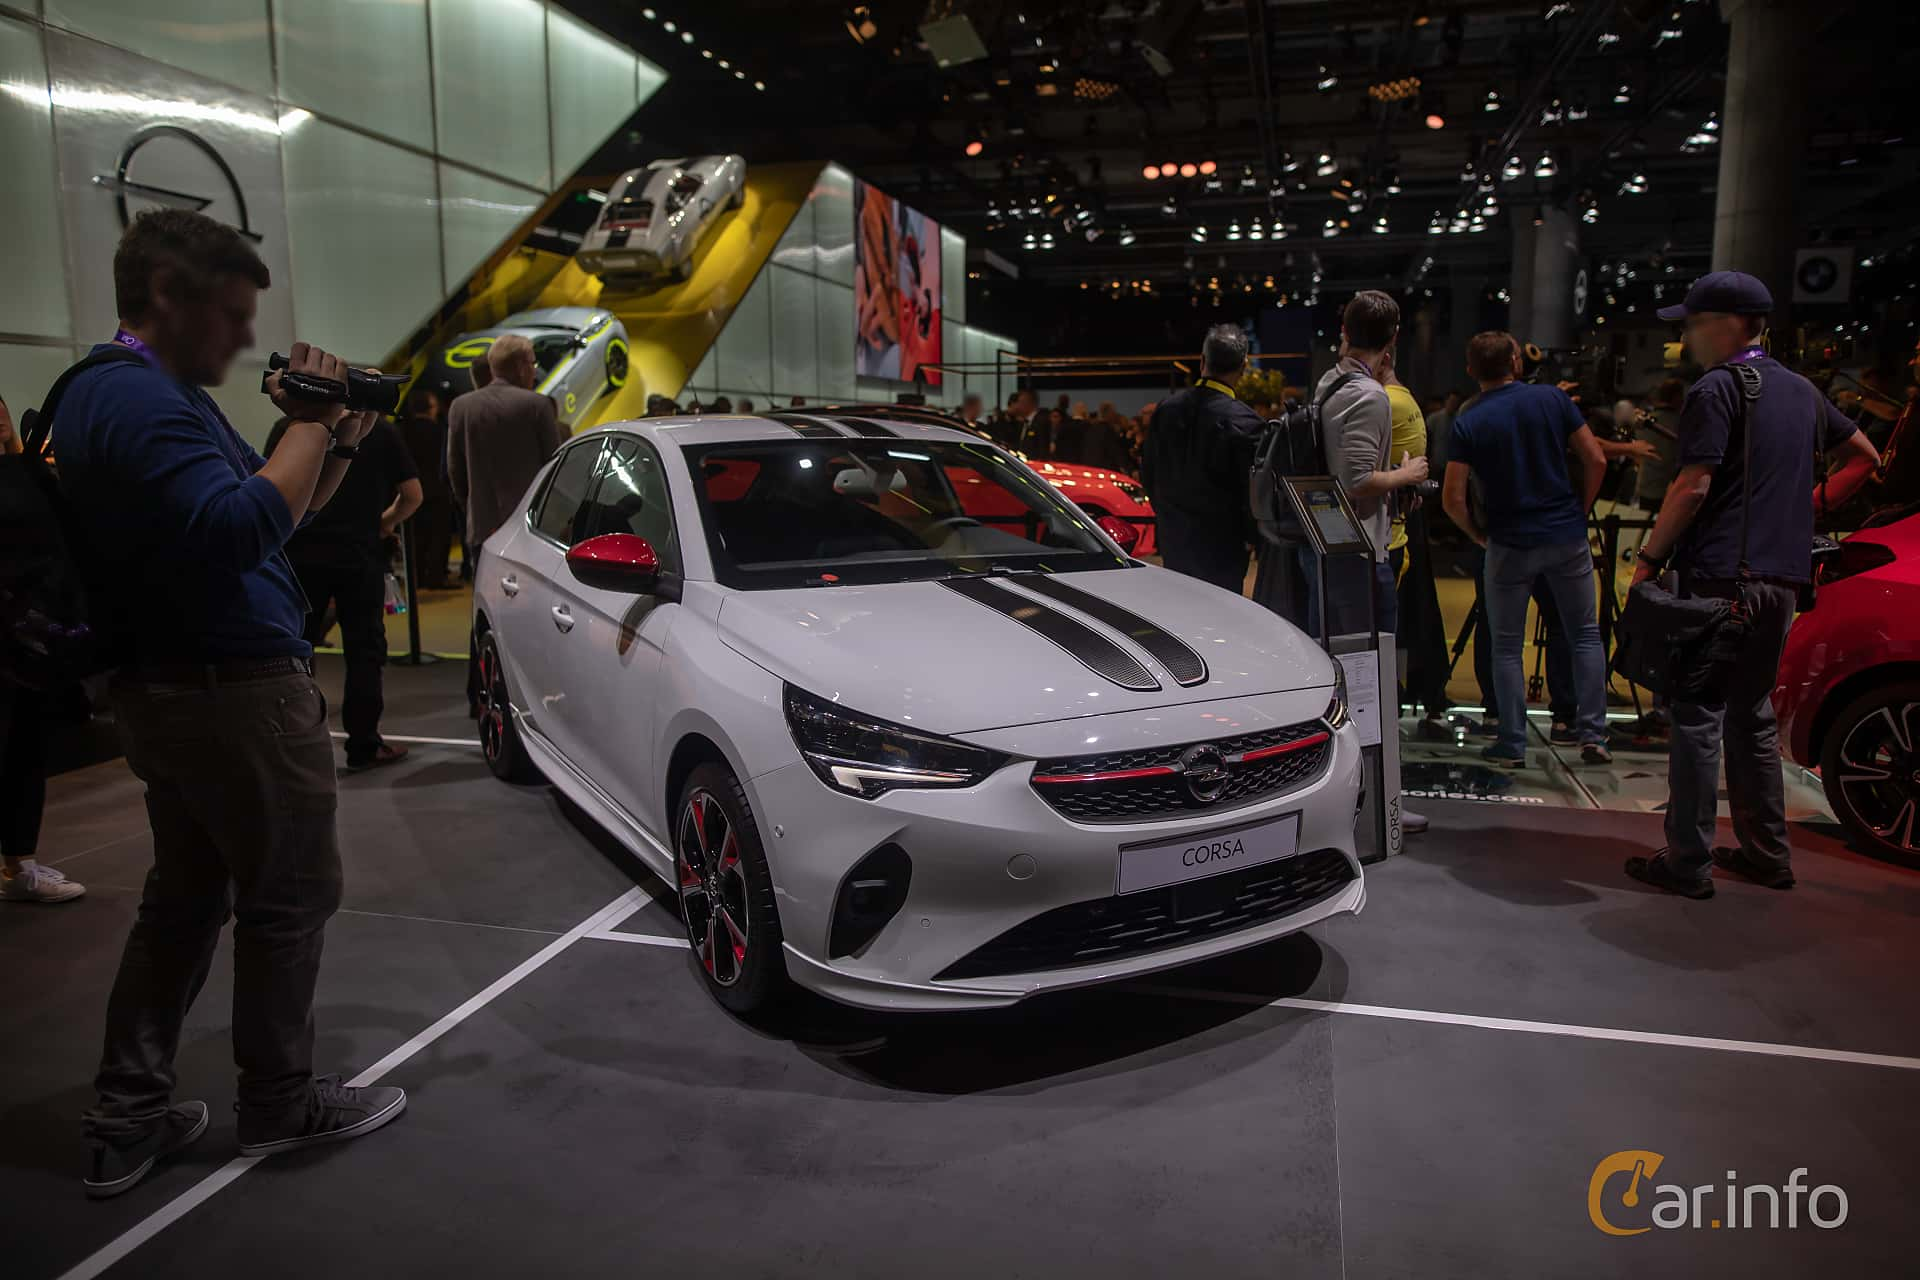 Opel Corsa 1.2 Turbo Automatic, 100hp, 2020 at IAA 2019